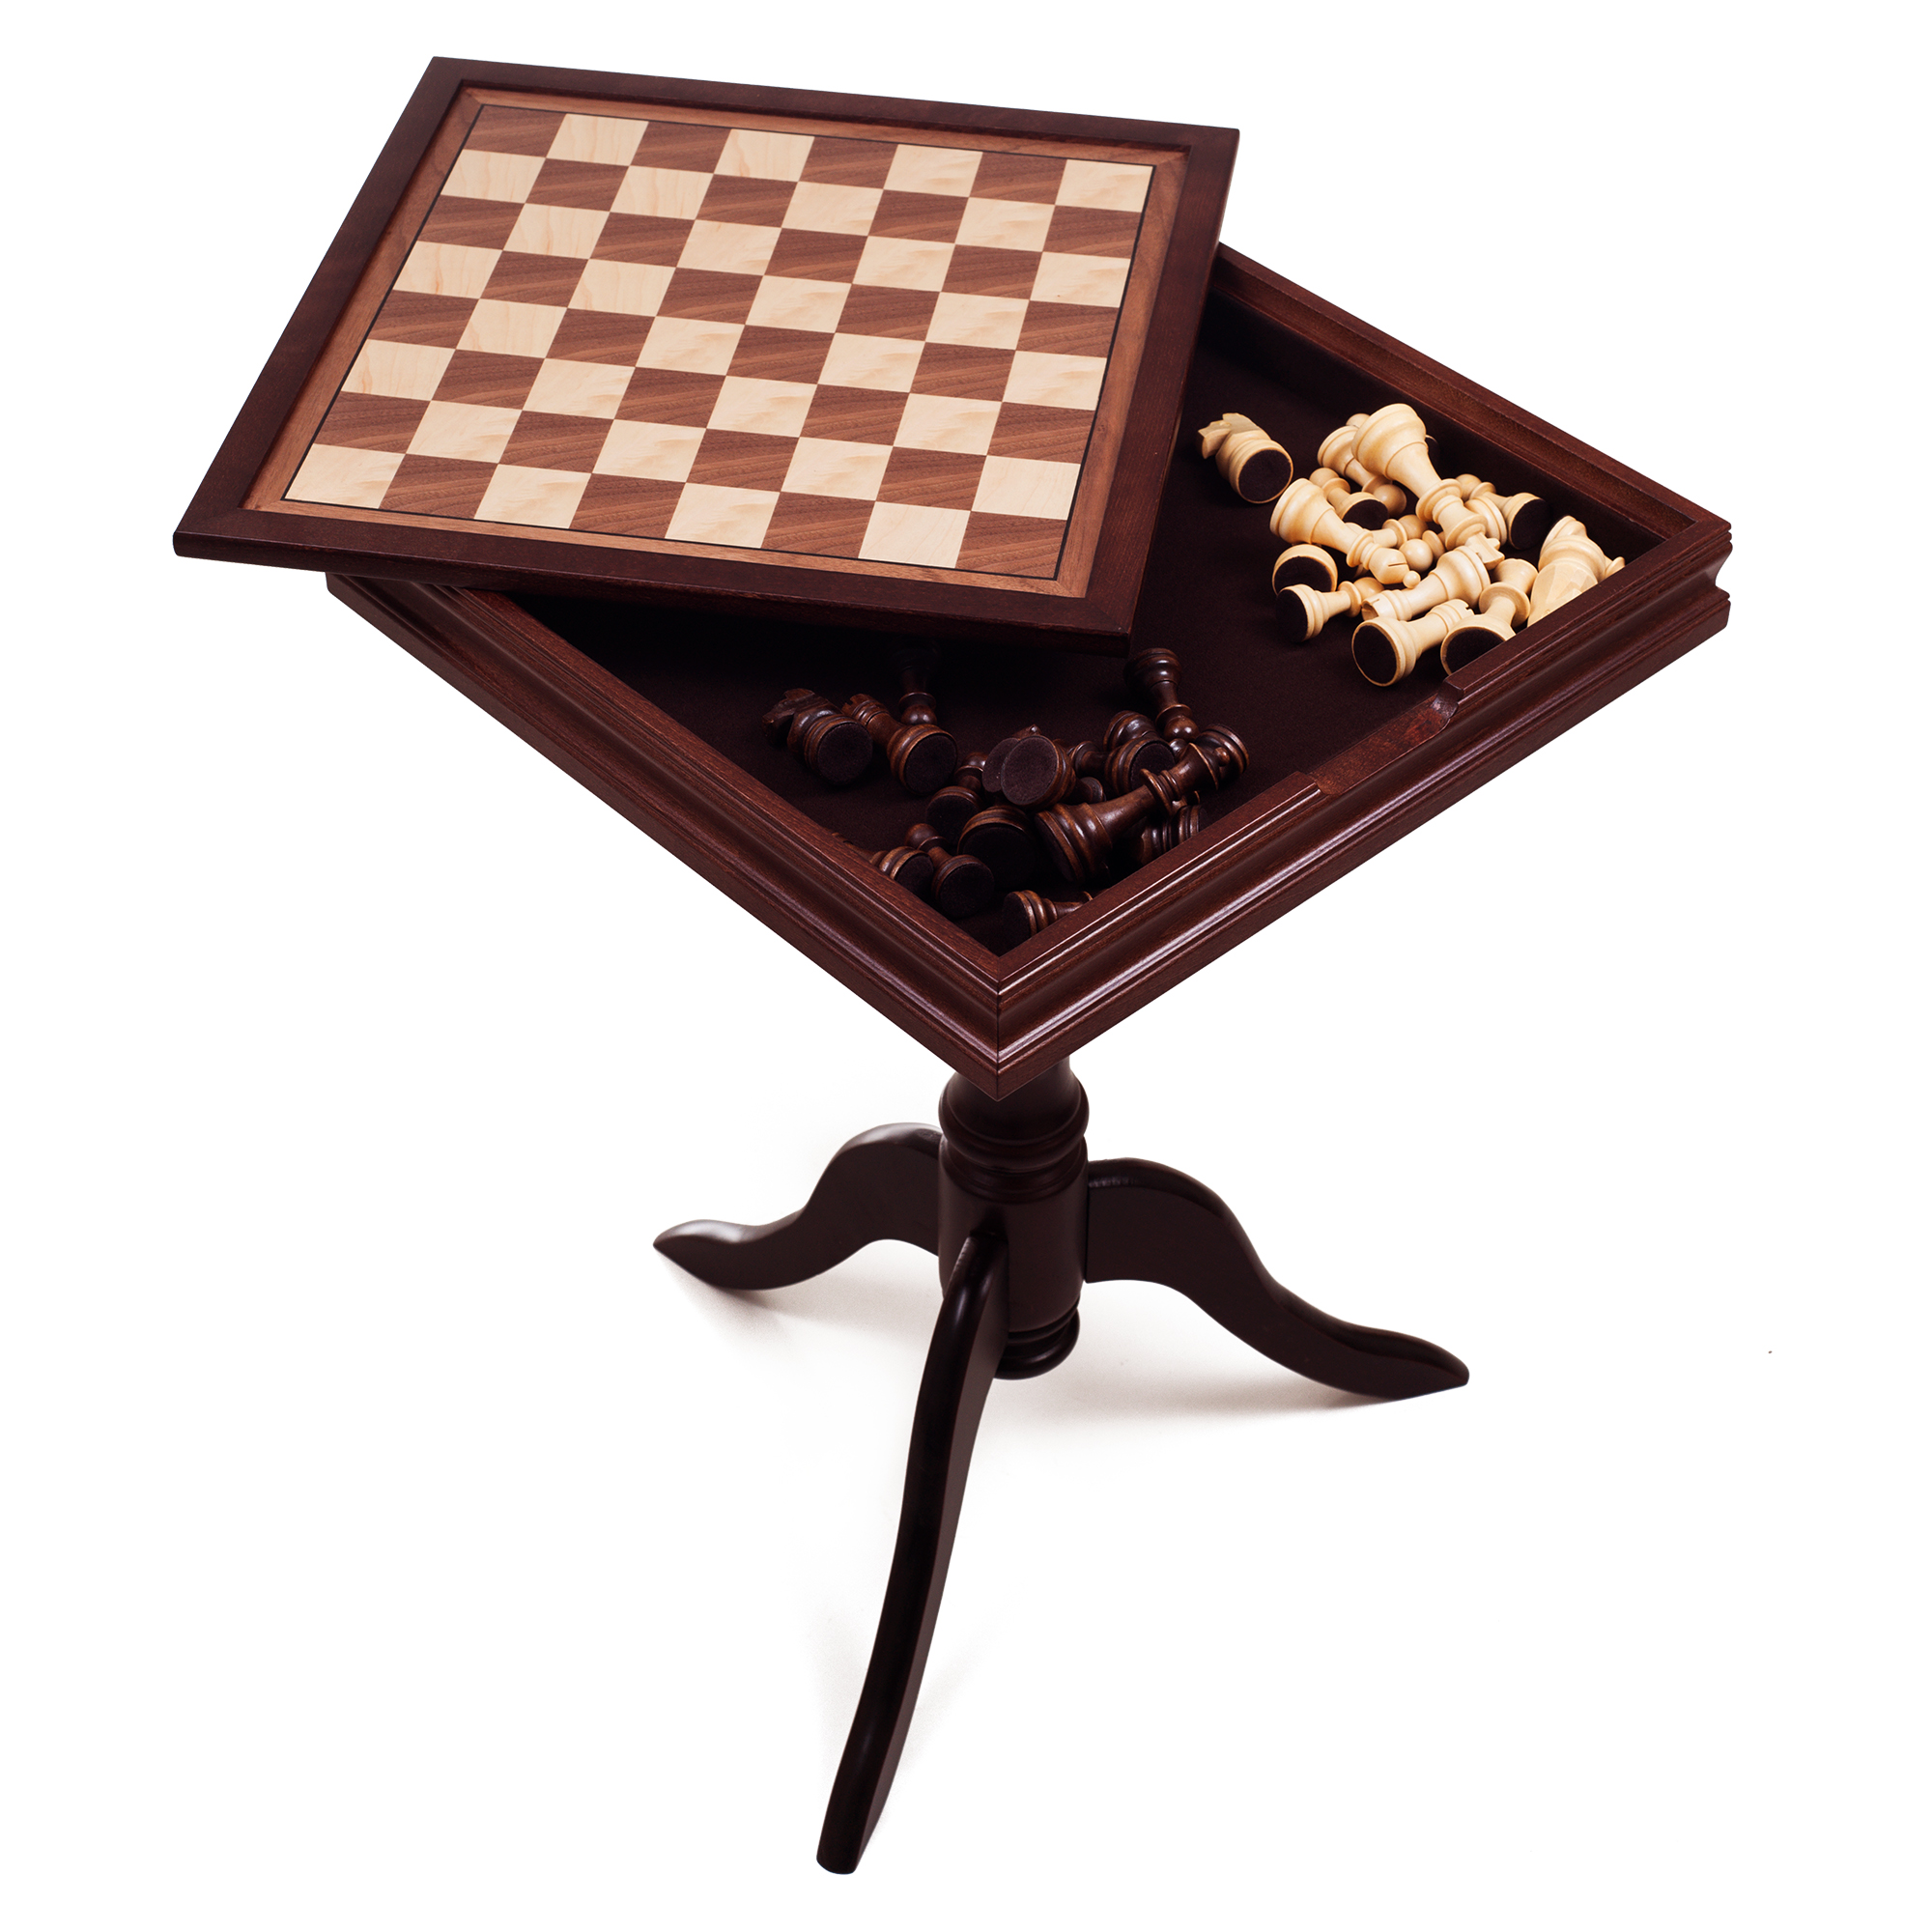 Deluxe Chess Set & Backgammon Wooden Table by Hey! Play! by Trademark Global LLC